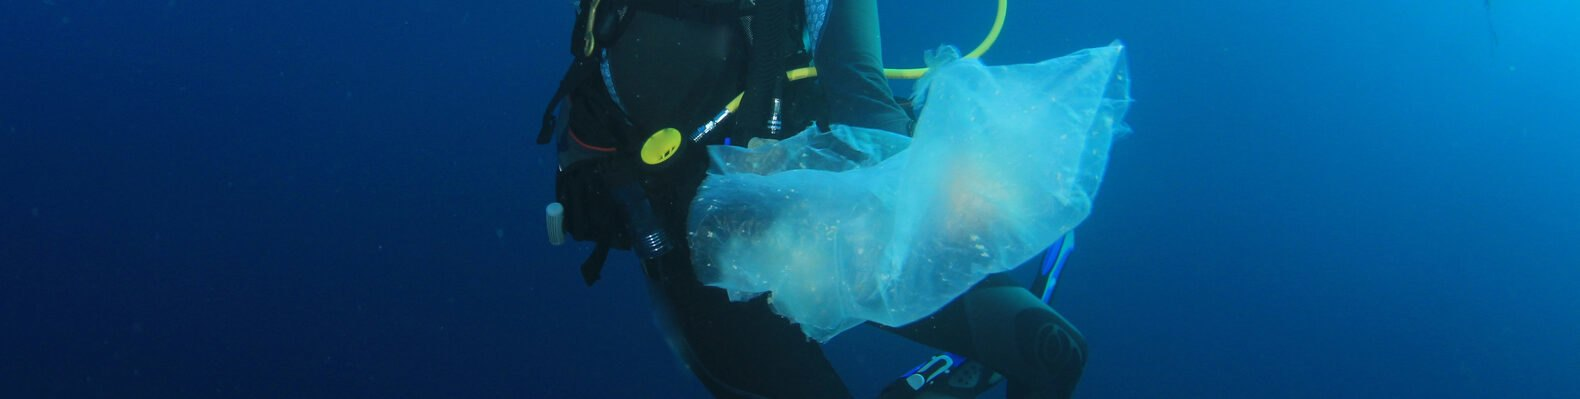 Scuba diver cleans up plastic pollution discarded in ocean